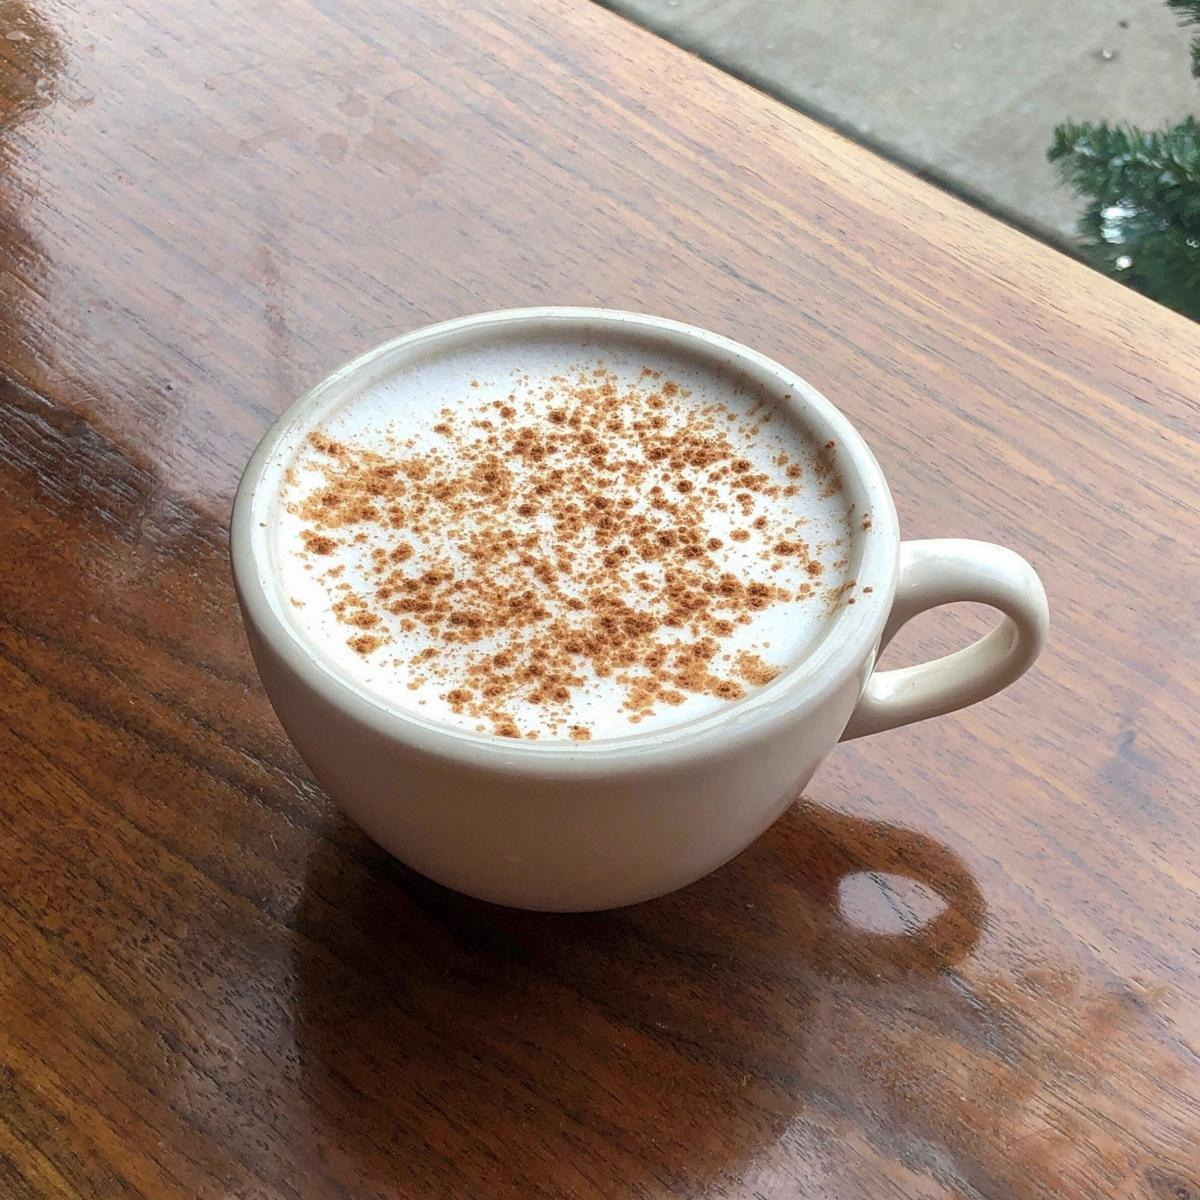 Spiced Date Nitro Latte, Photo courtesy of The Coffee Ethic